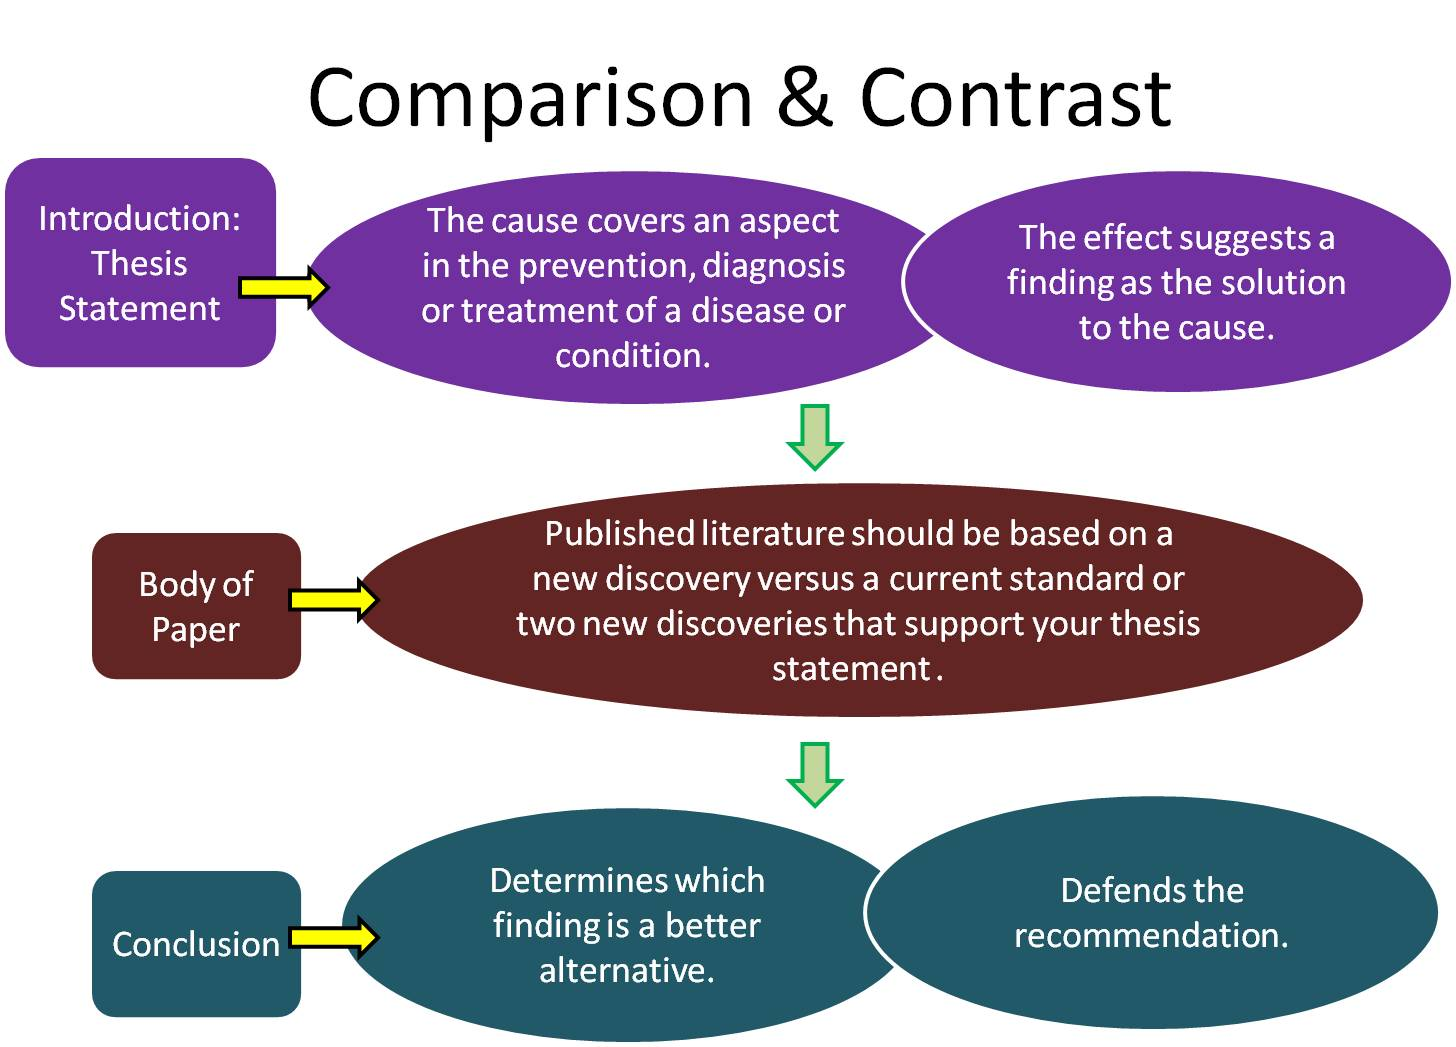 Is this a good thieses statment for a compare and contrast paper?